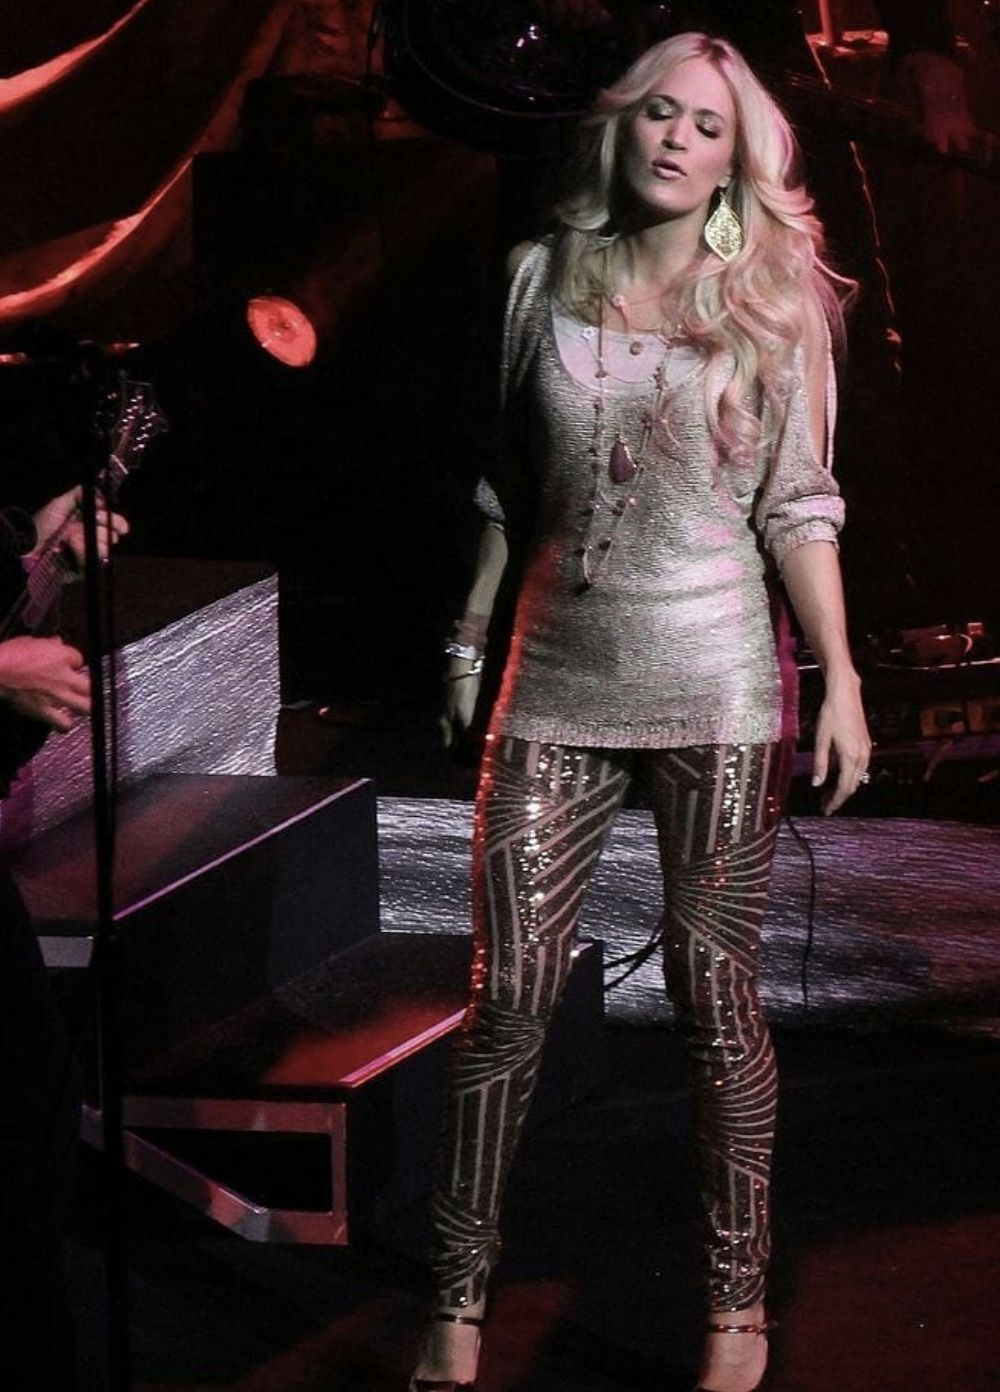 Pin by David Schipporeit on Carrie Underwood in 2020